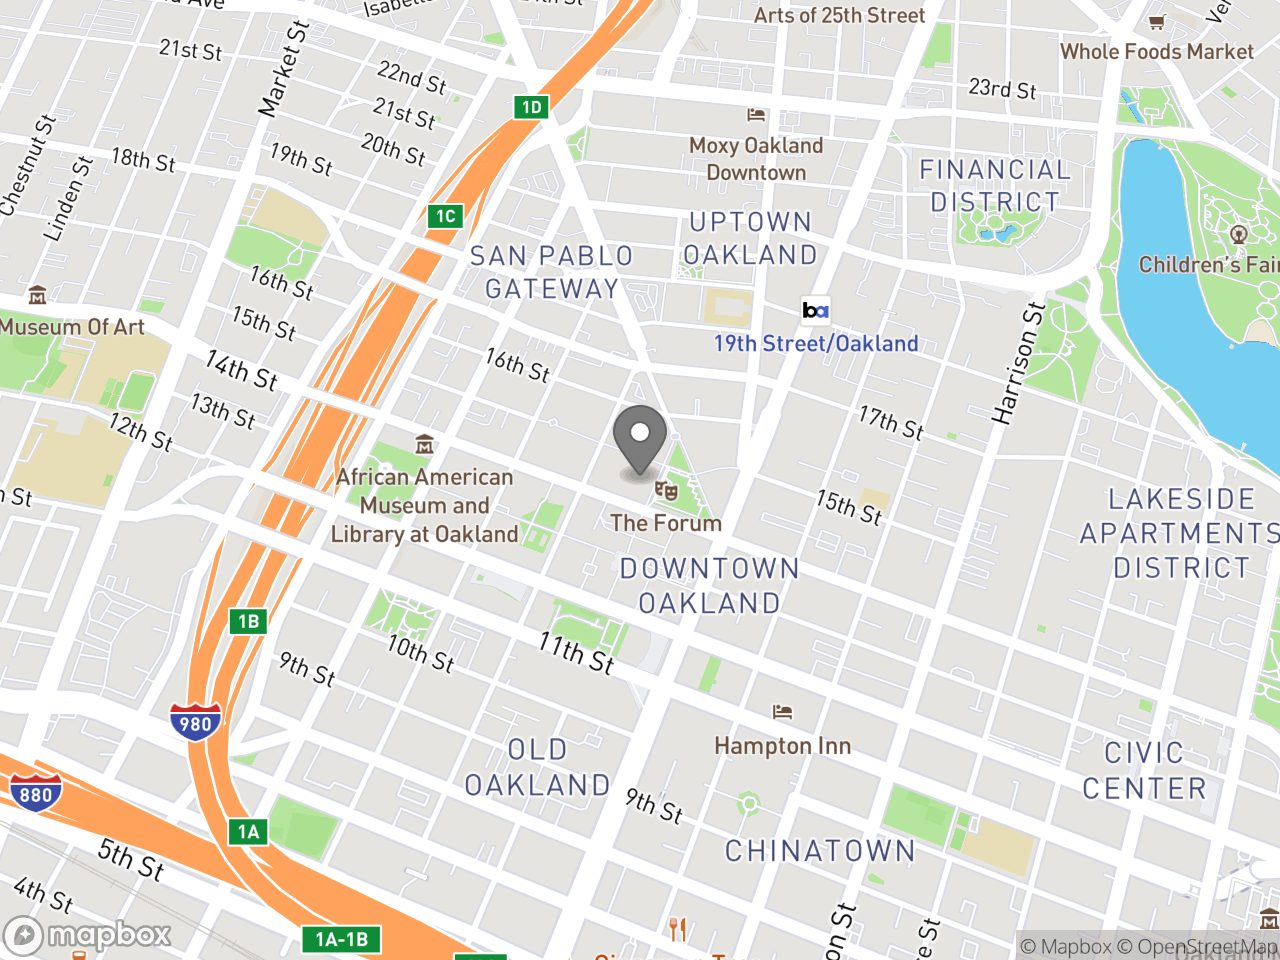 Map image for March 6, 2019 Design Review Committee Special Meeting, located at 1 Frank H Ogawa Plaza in Oakland, CA 94612